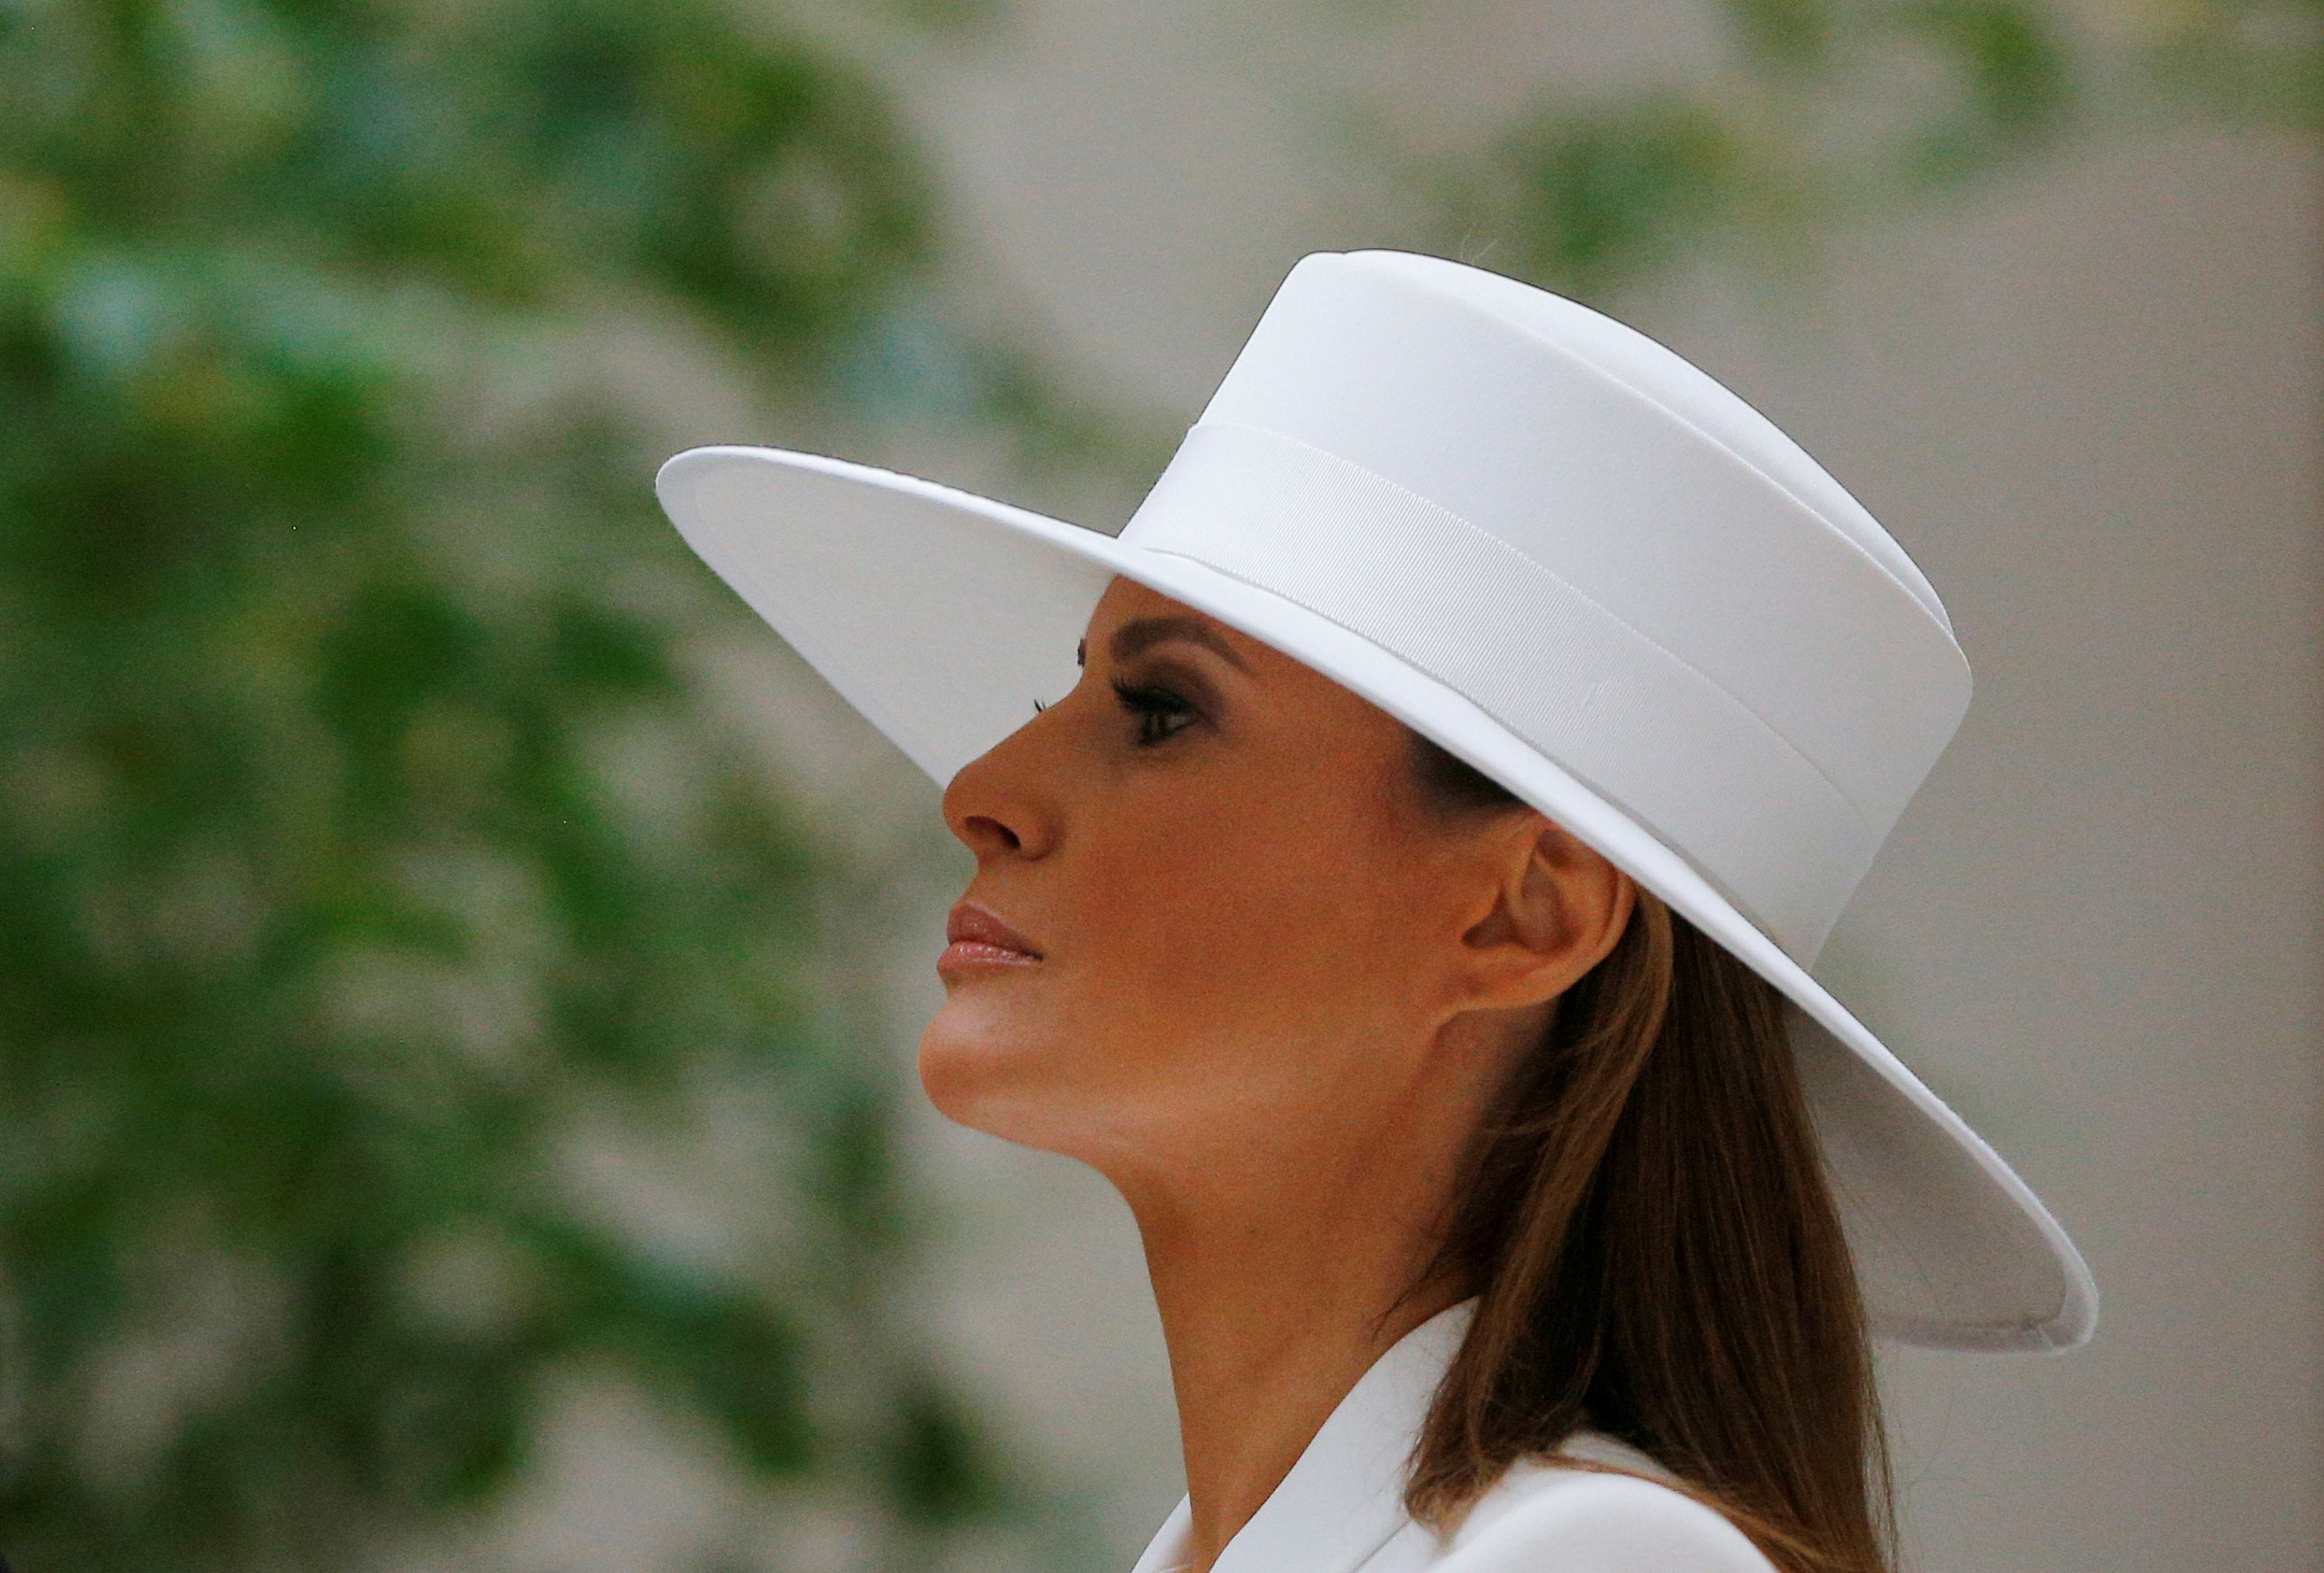 United States first lady Melania Trump visits the National Gallery of Art with her French counterpart Brigitte Macron in Washington